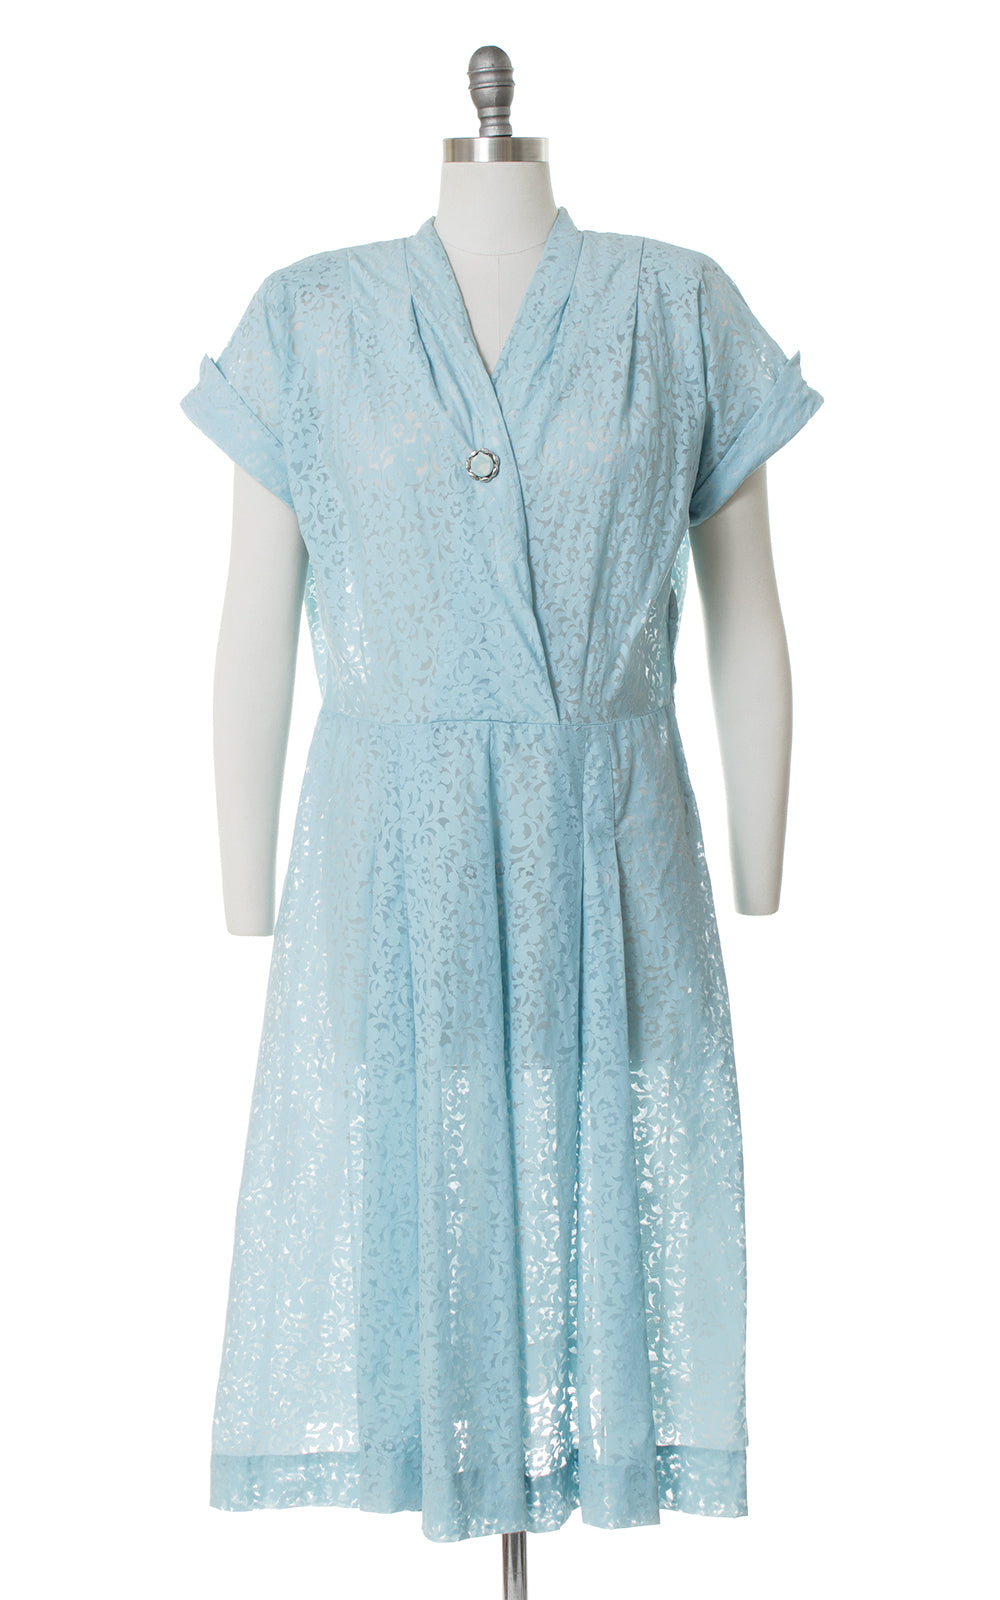 1940s Sheer Floral Filigree Burnout Dress | x-large